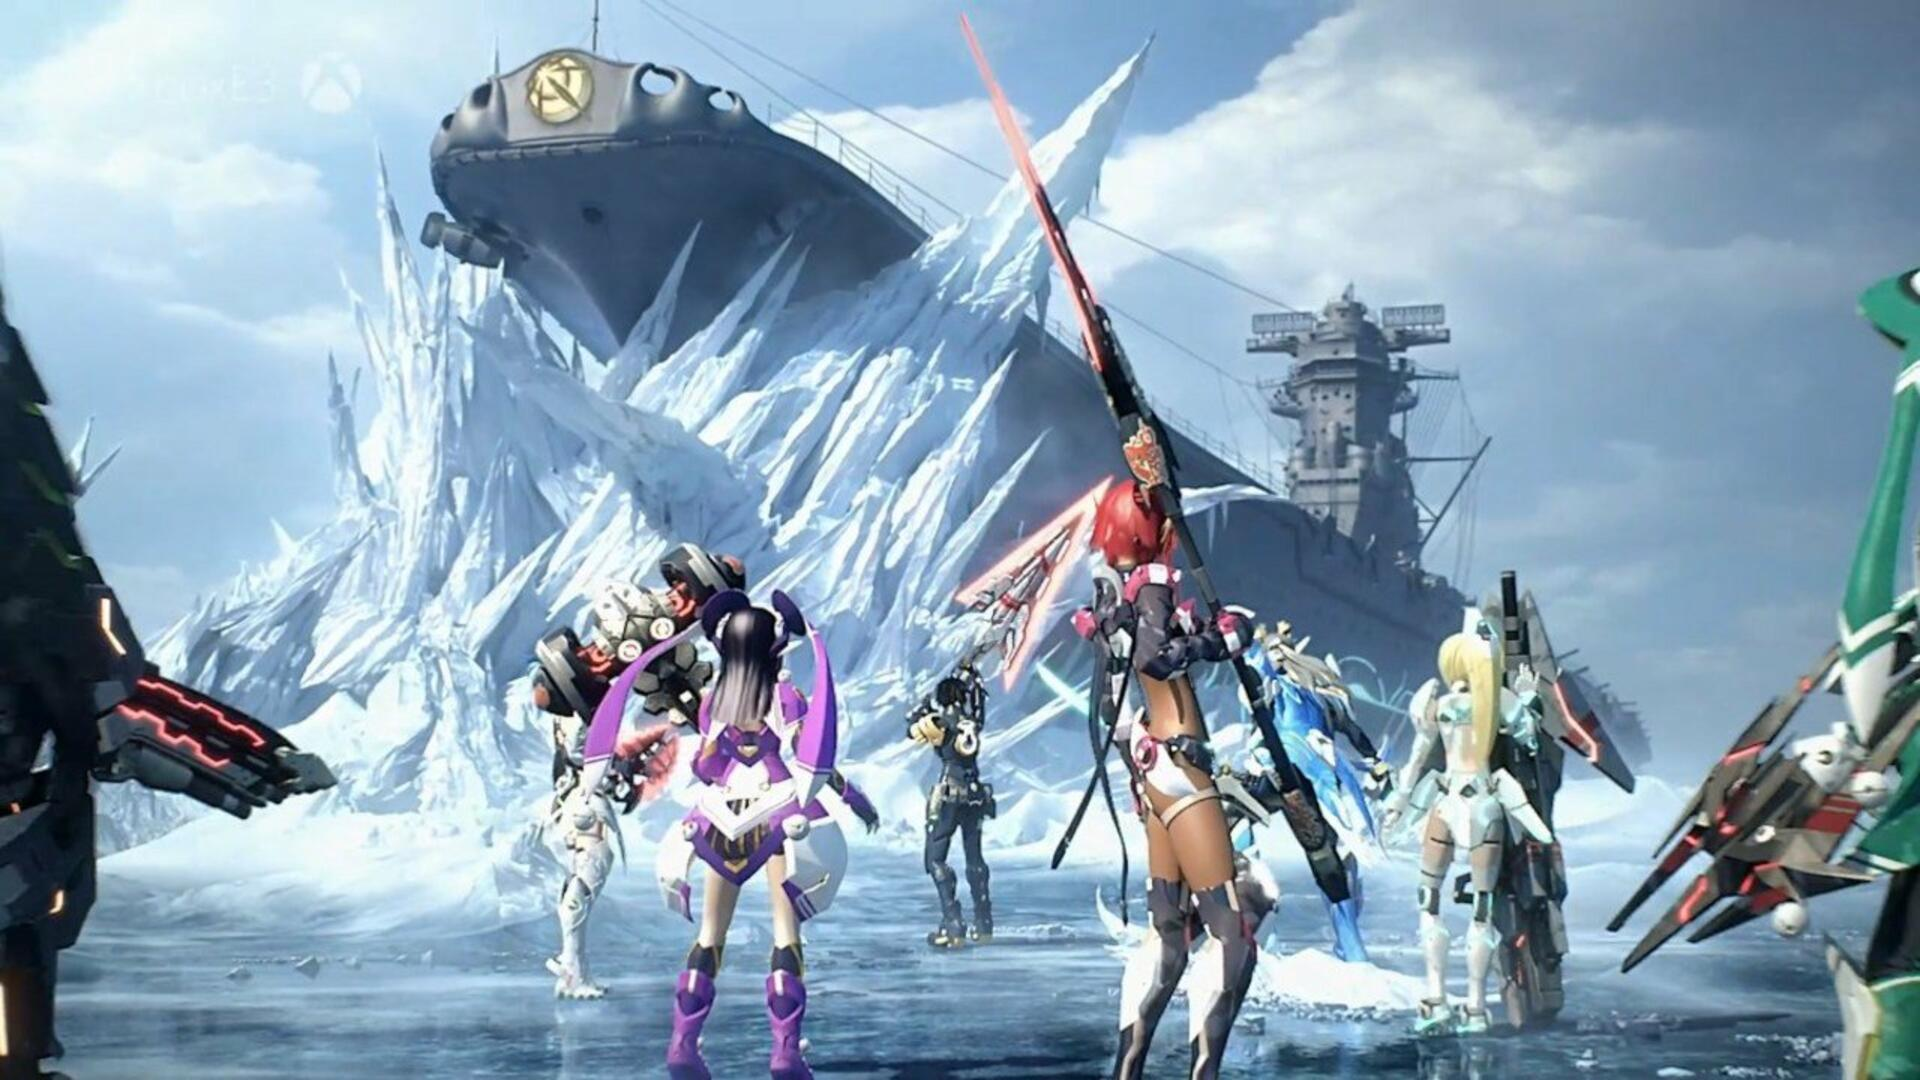 """Phantasy Star Online 2 Will """"End Up on All Platforms,"""" Phil Spencer Confirms"""